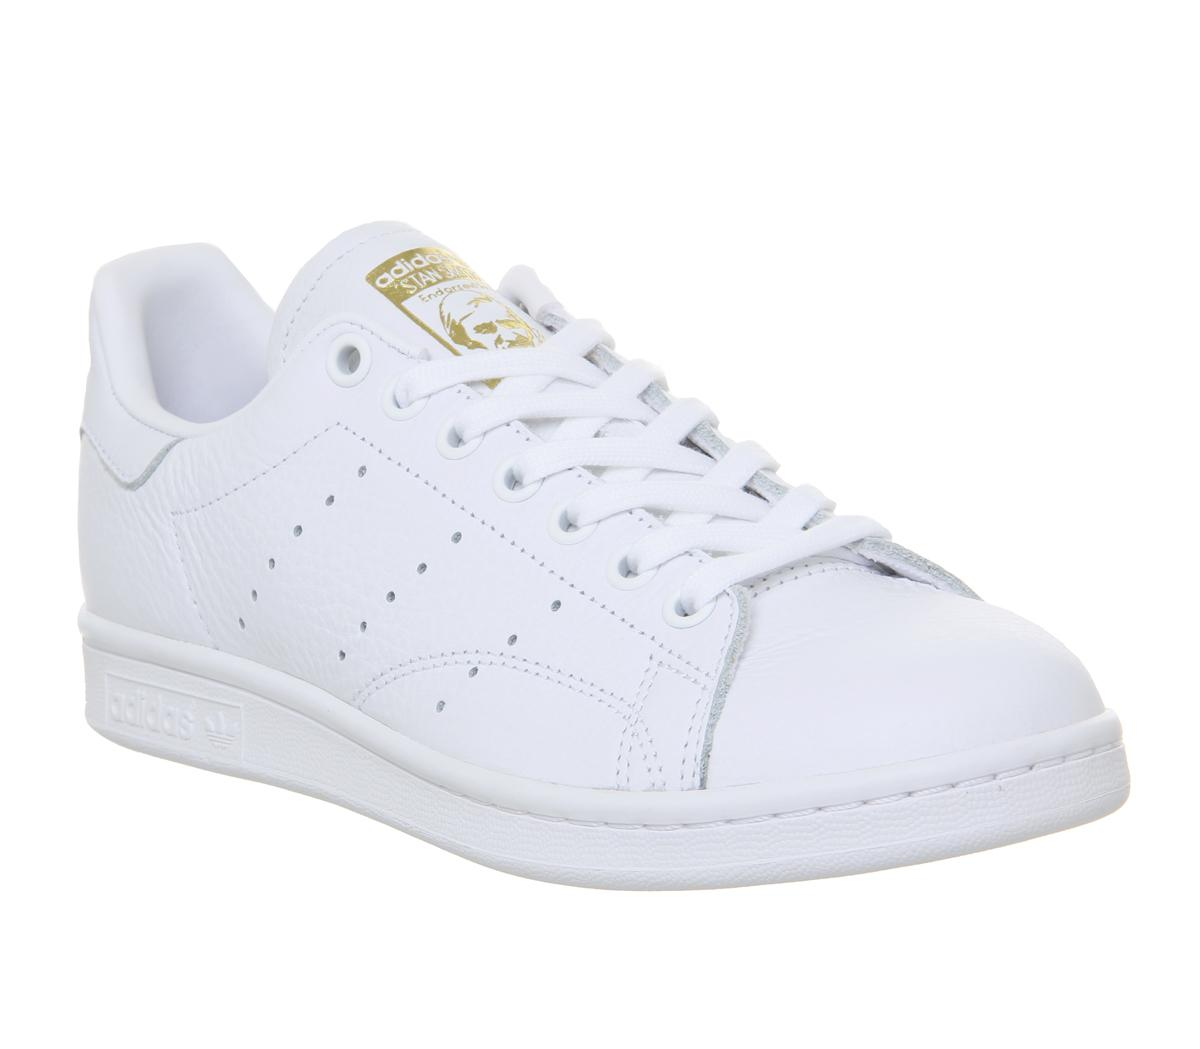 Womens Adidas White Leather Lace Up Trainers Size UK 5 *Ex